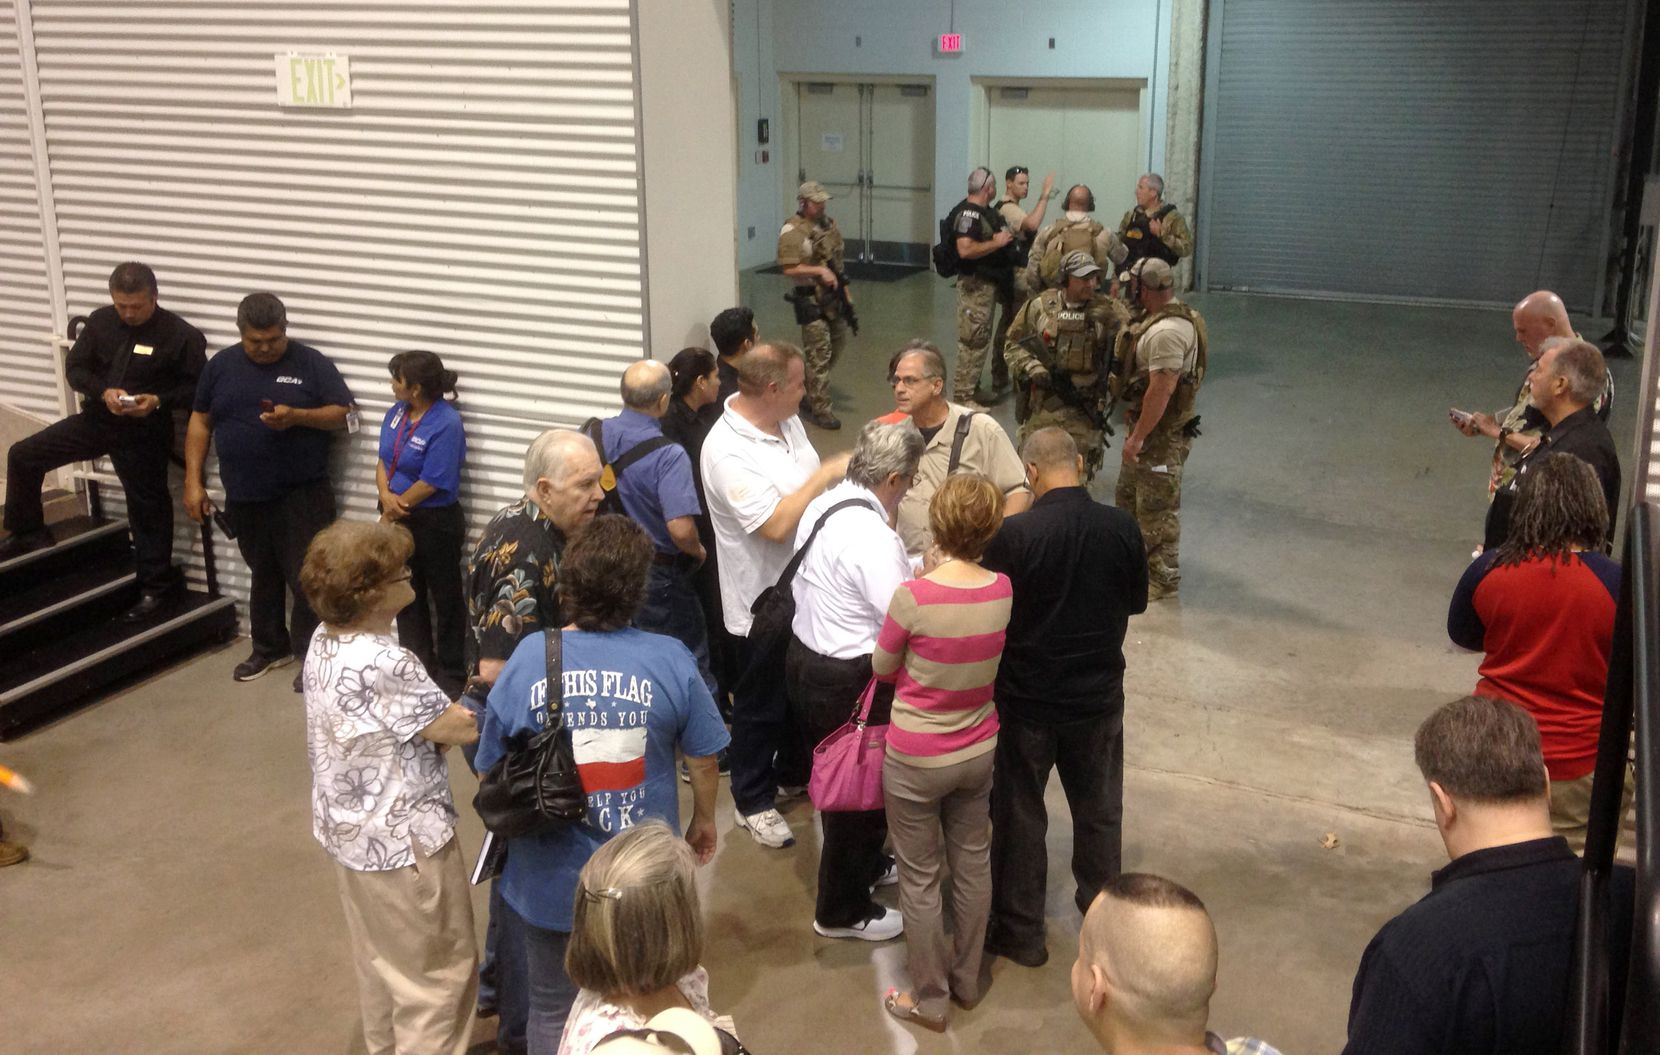 Garland officers kept attendees inside the Curtis Culwell Center after the shooting.